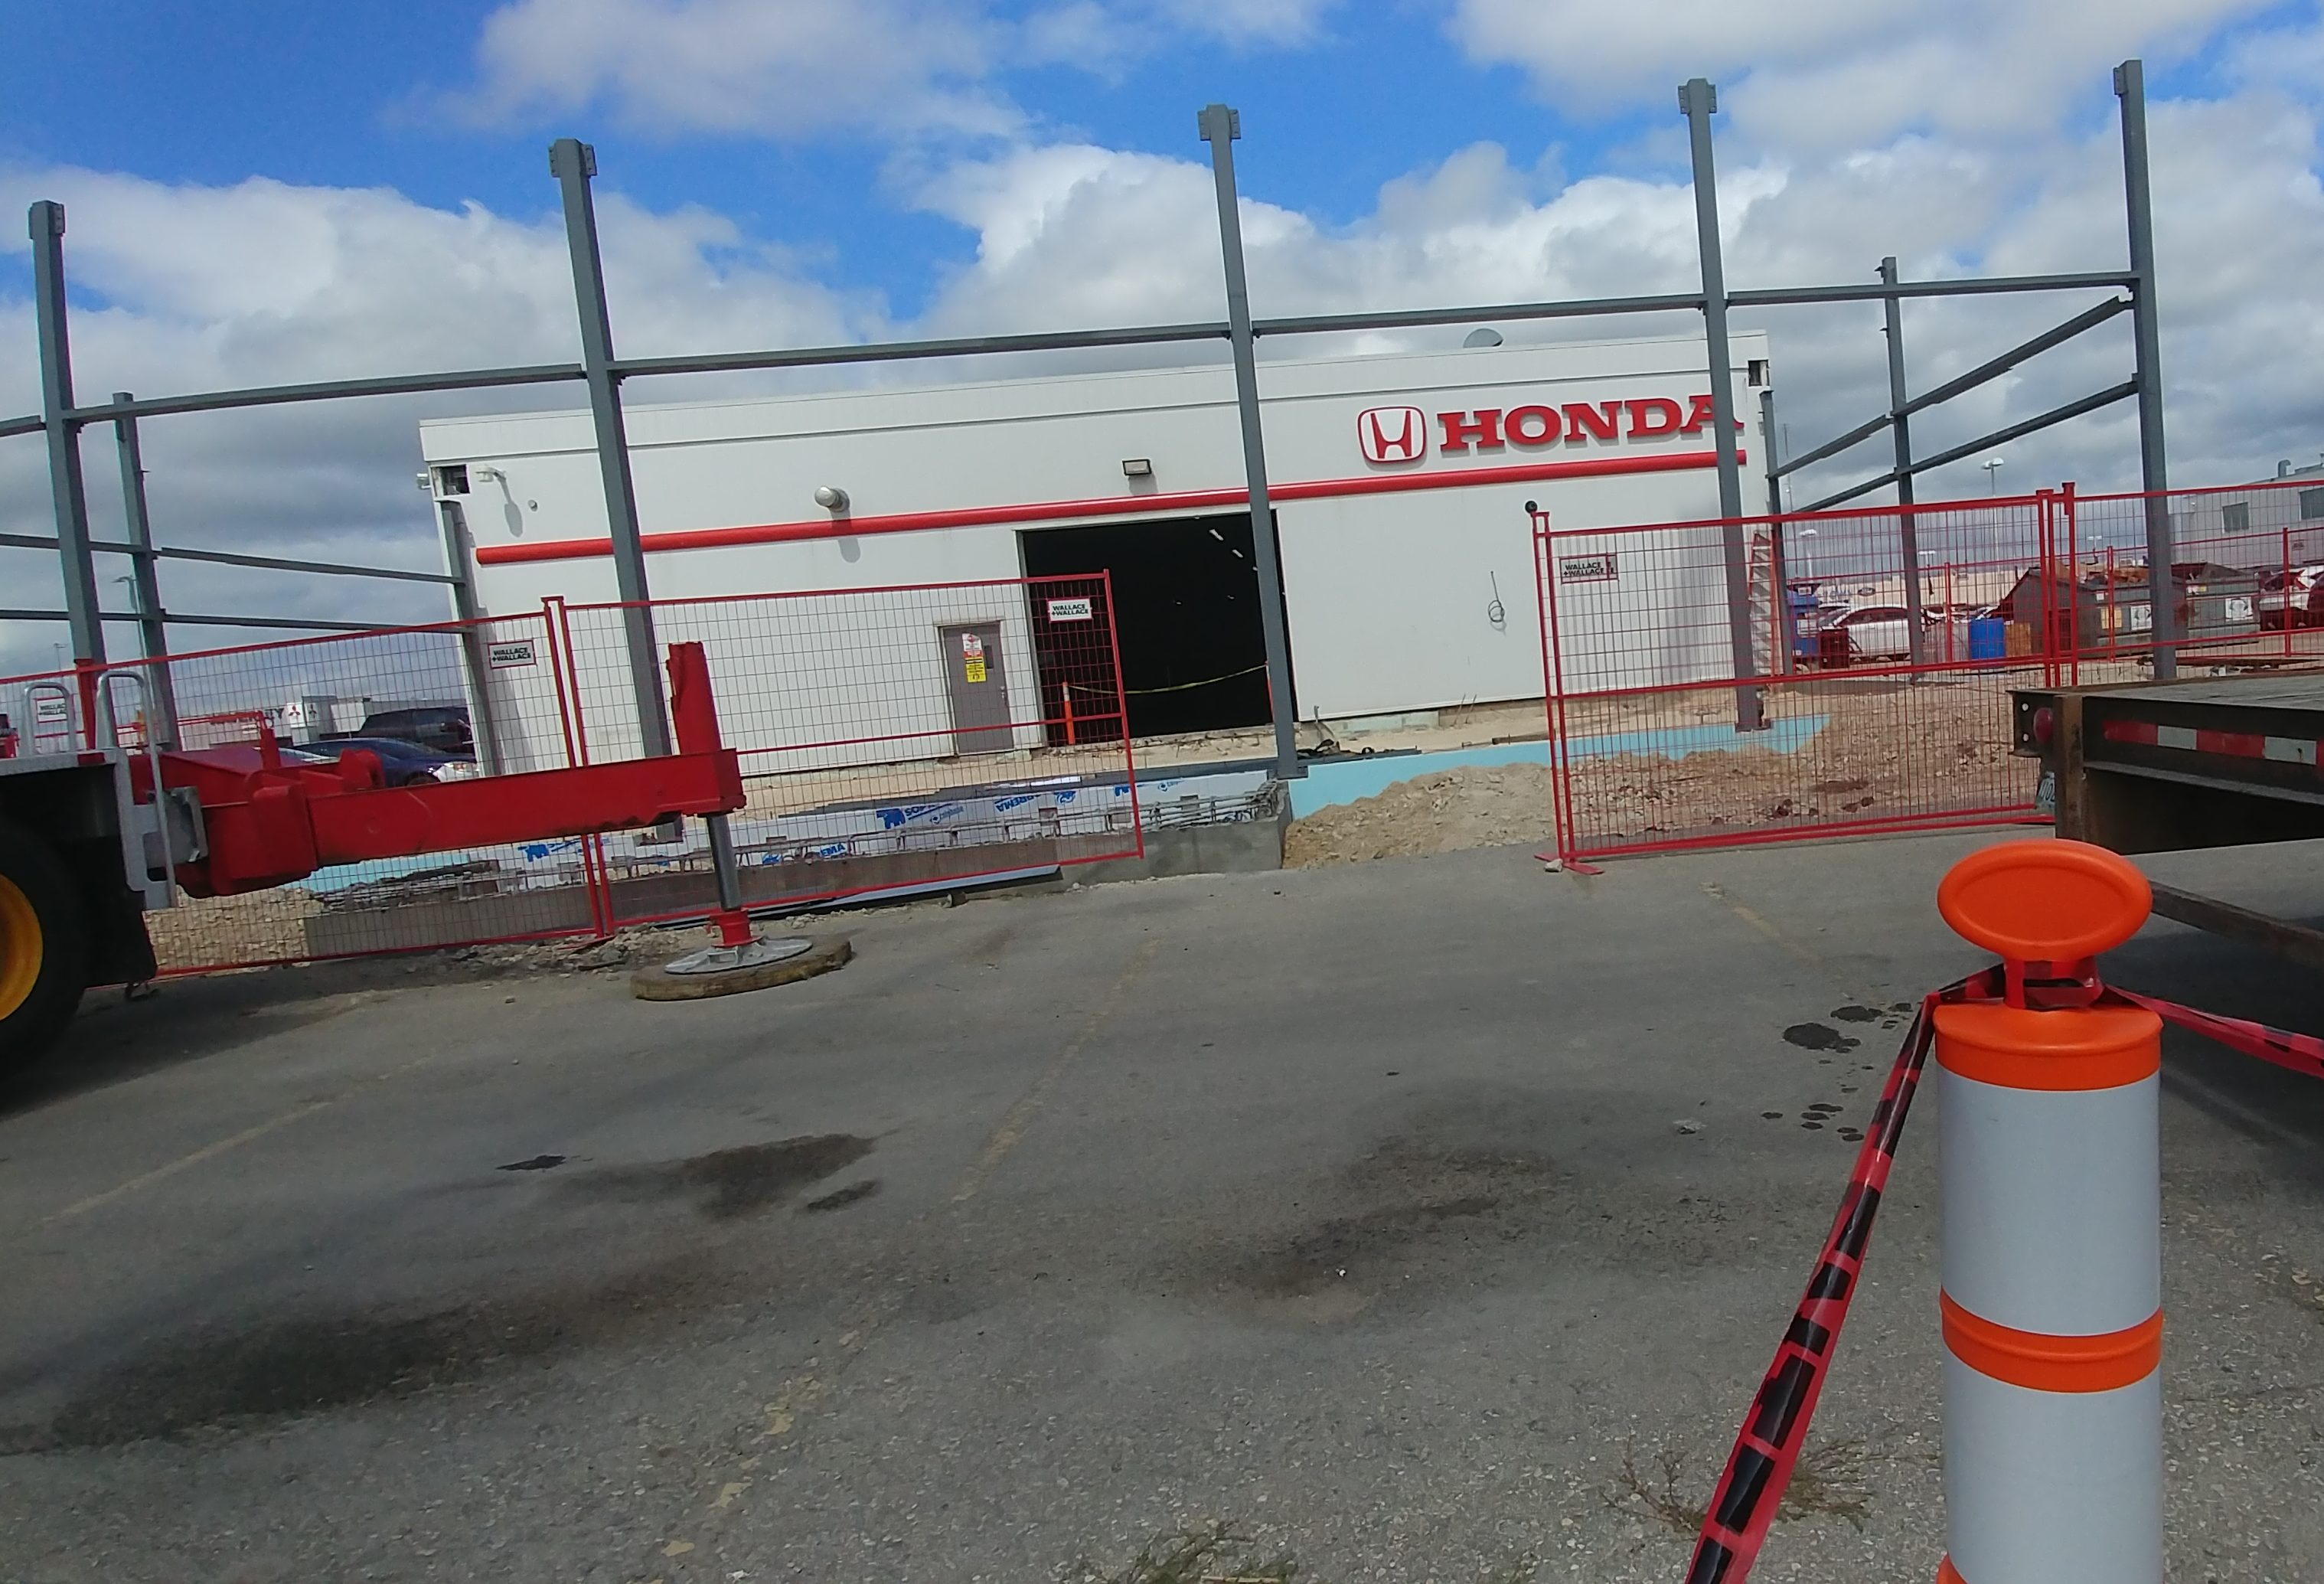 Honda Canada Has Ordered Winnipeg A Makeover Wash Bay Included On The West And South Sides Of Building Large Metal Poles Stick Out